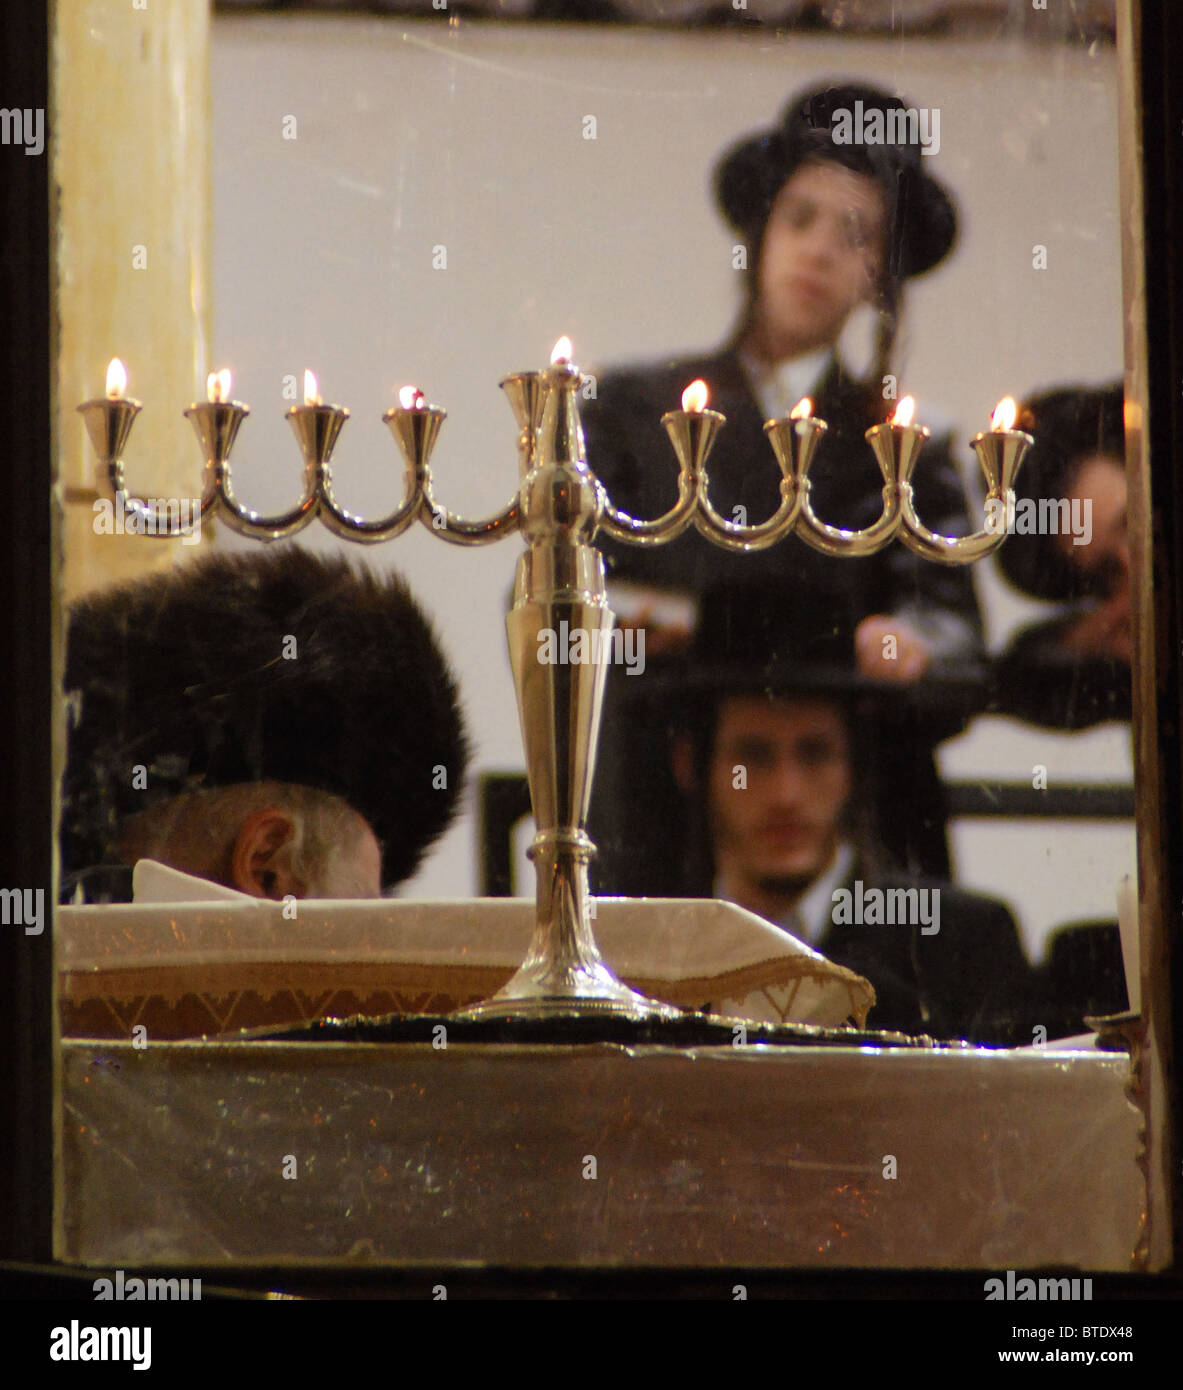 5388. THE CUSTOM OF PLACING THE HANUKKA LIGHTS BY THE WINDOW IN ORDER TO ANOUNCE THE 'MIRACLE OF HANUKKA' - Stock Image